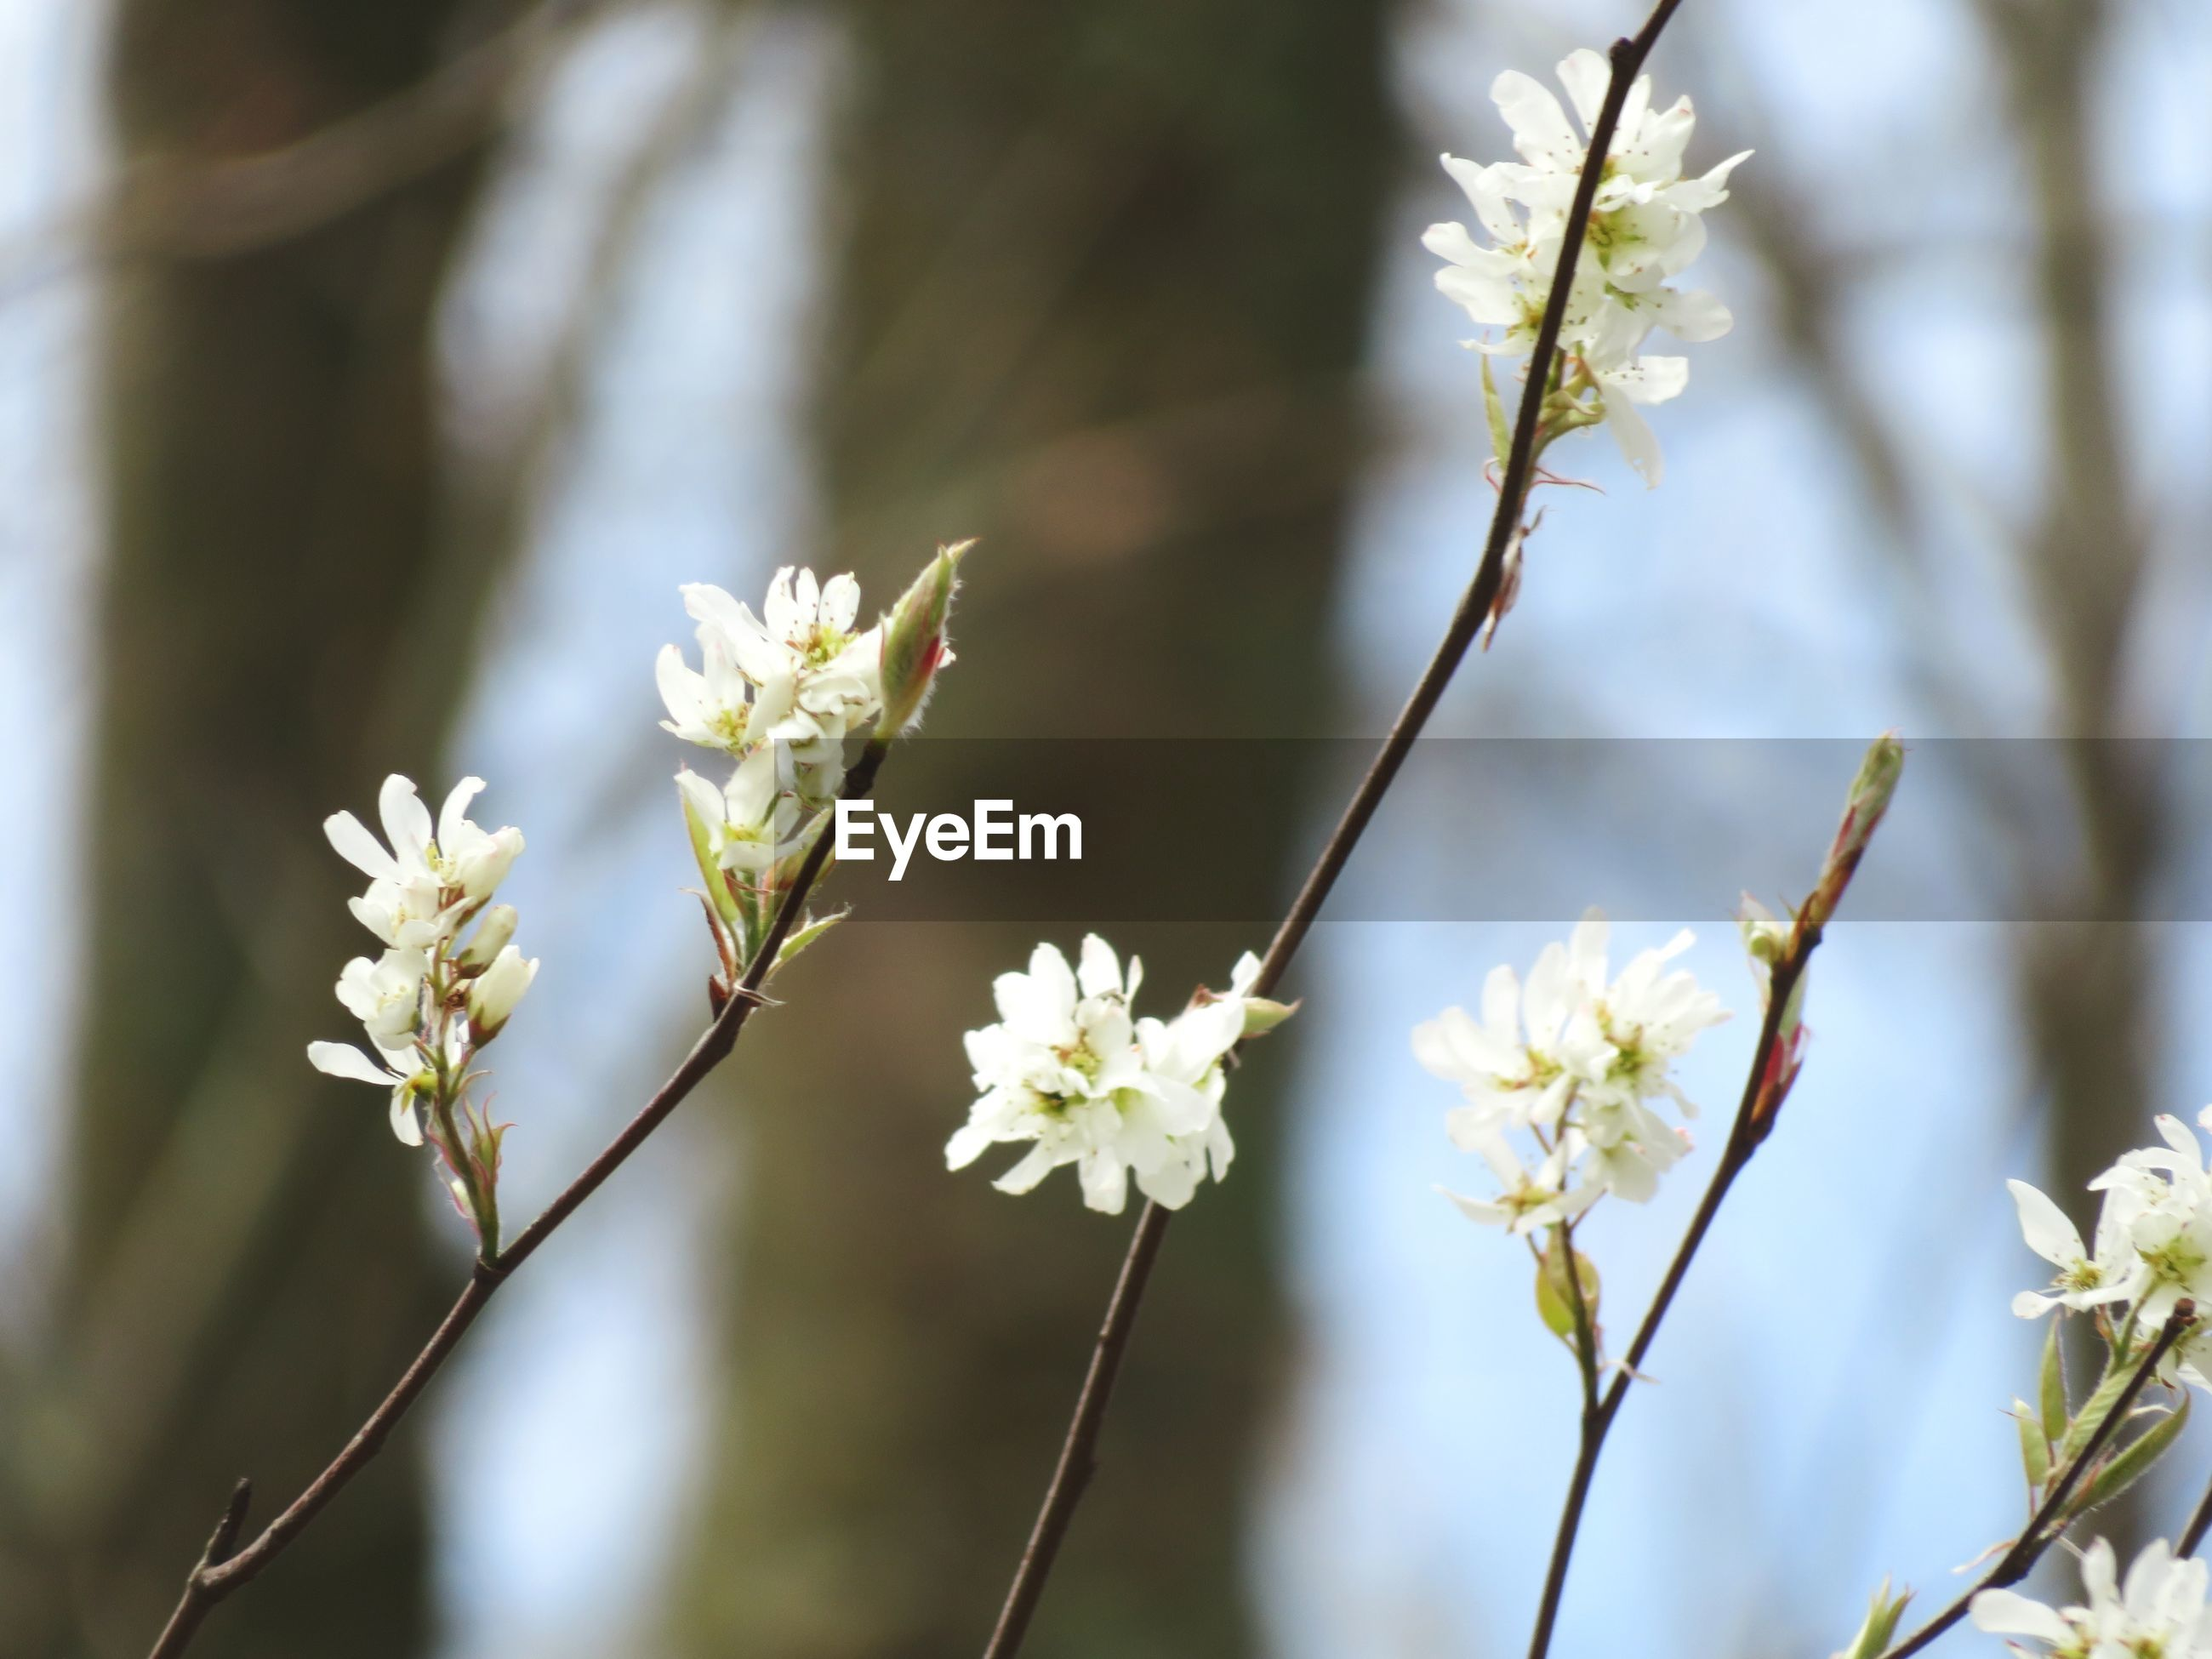 CLOSE-UP OF WHITE CHERRY BLOSSOM ON TWIG